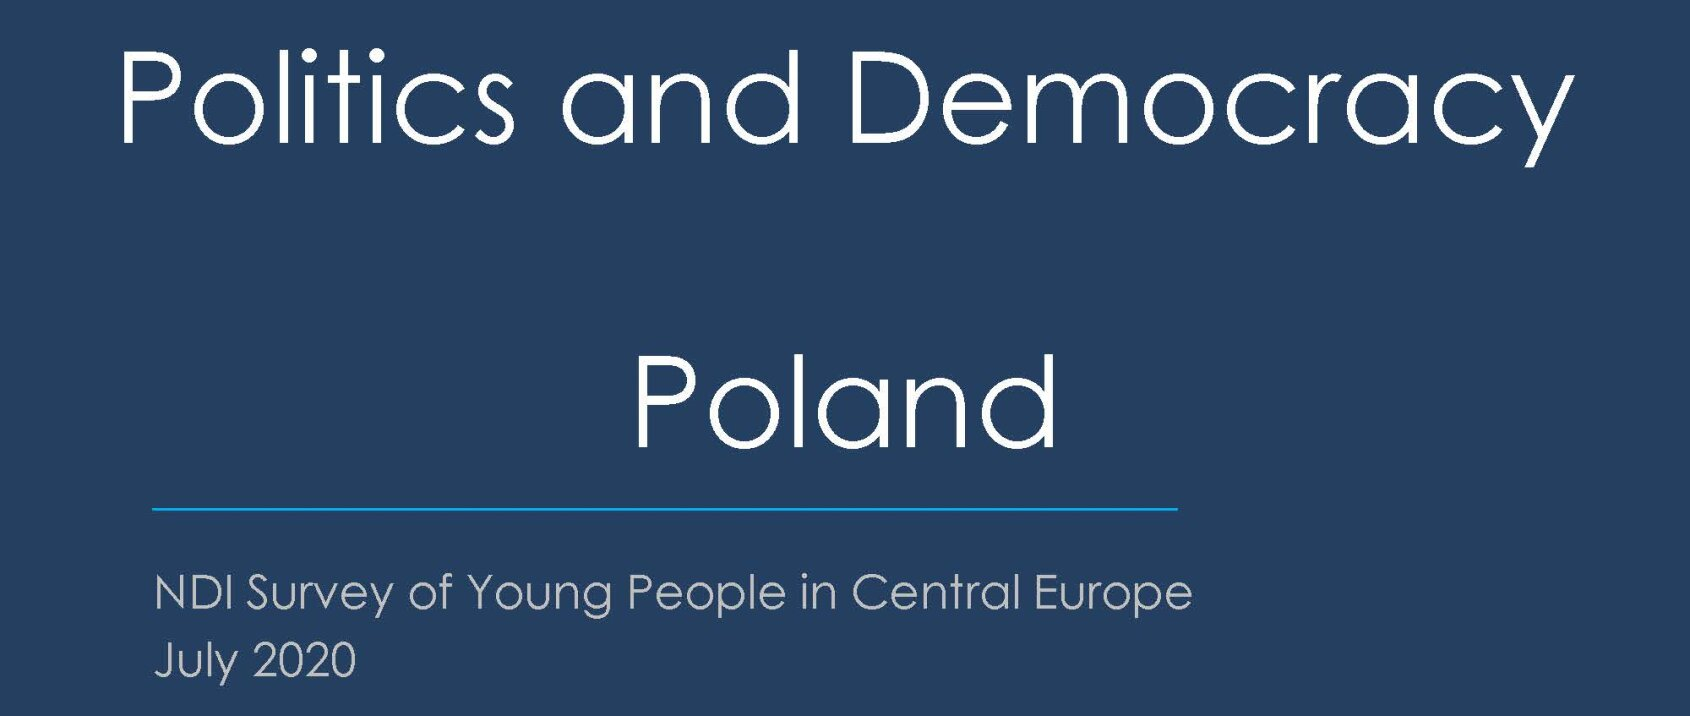 Youth Attitudes on Politics and Democracy: Poland